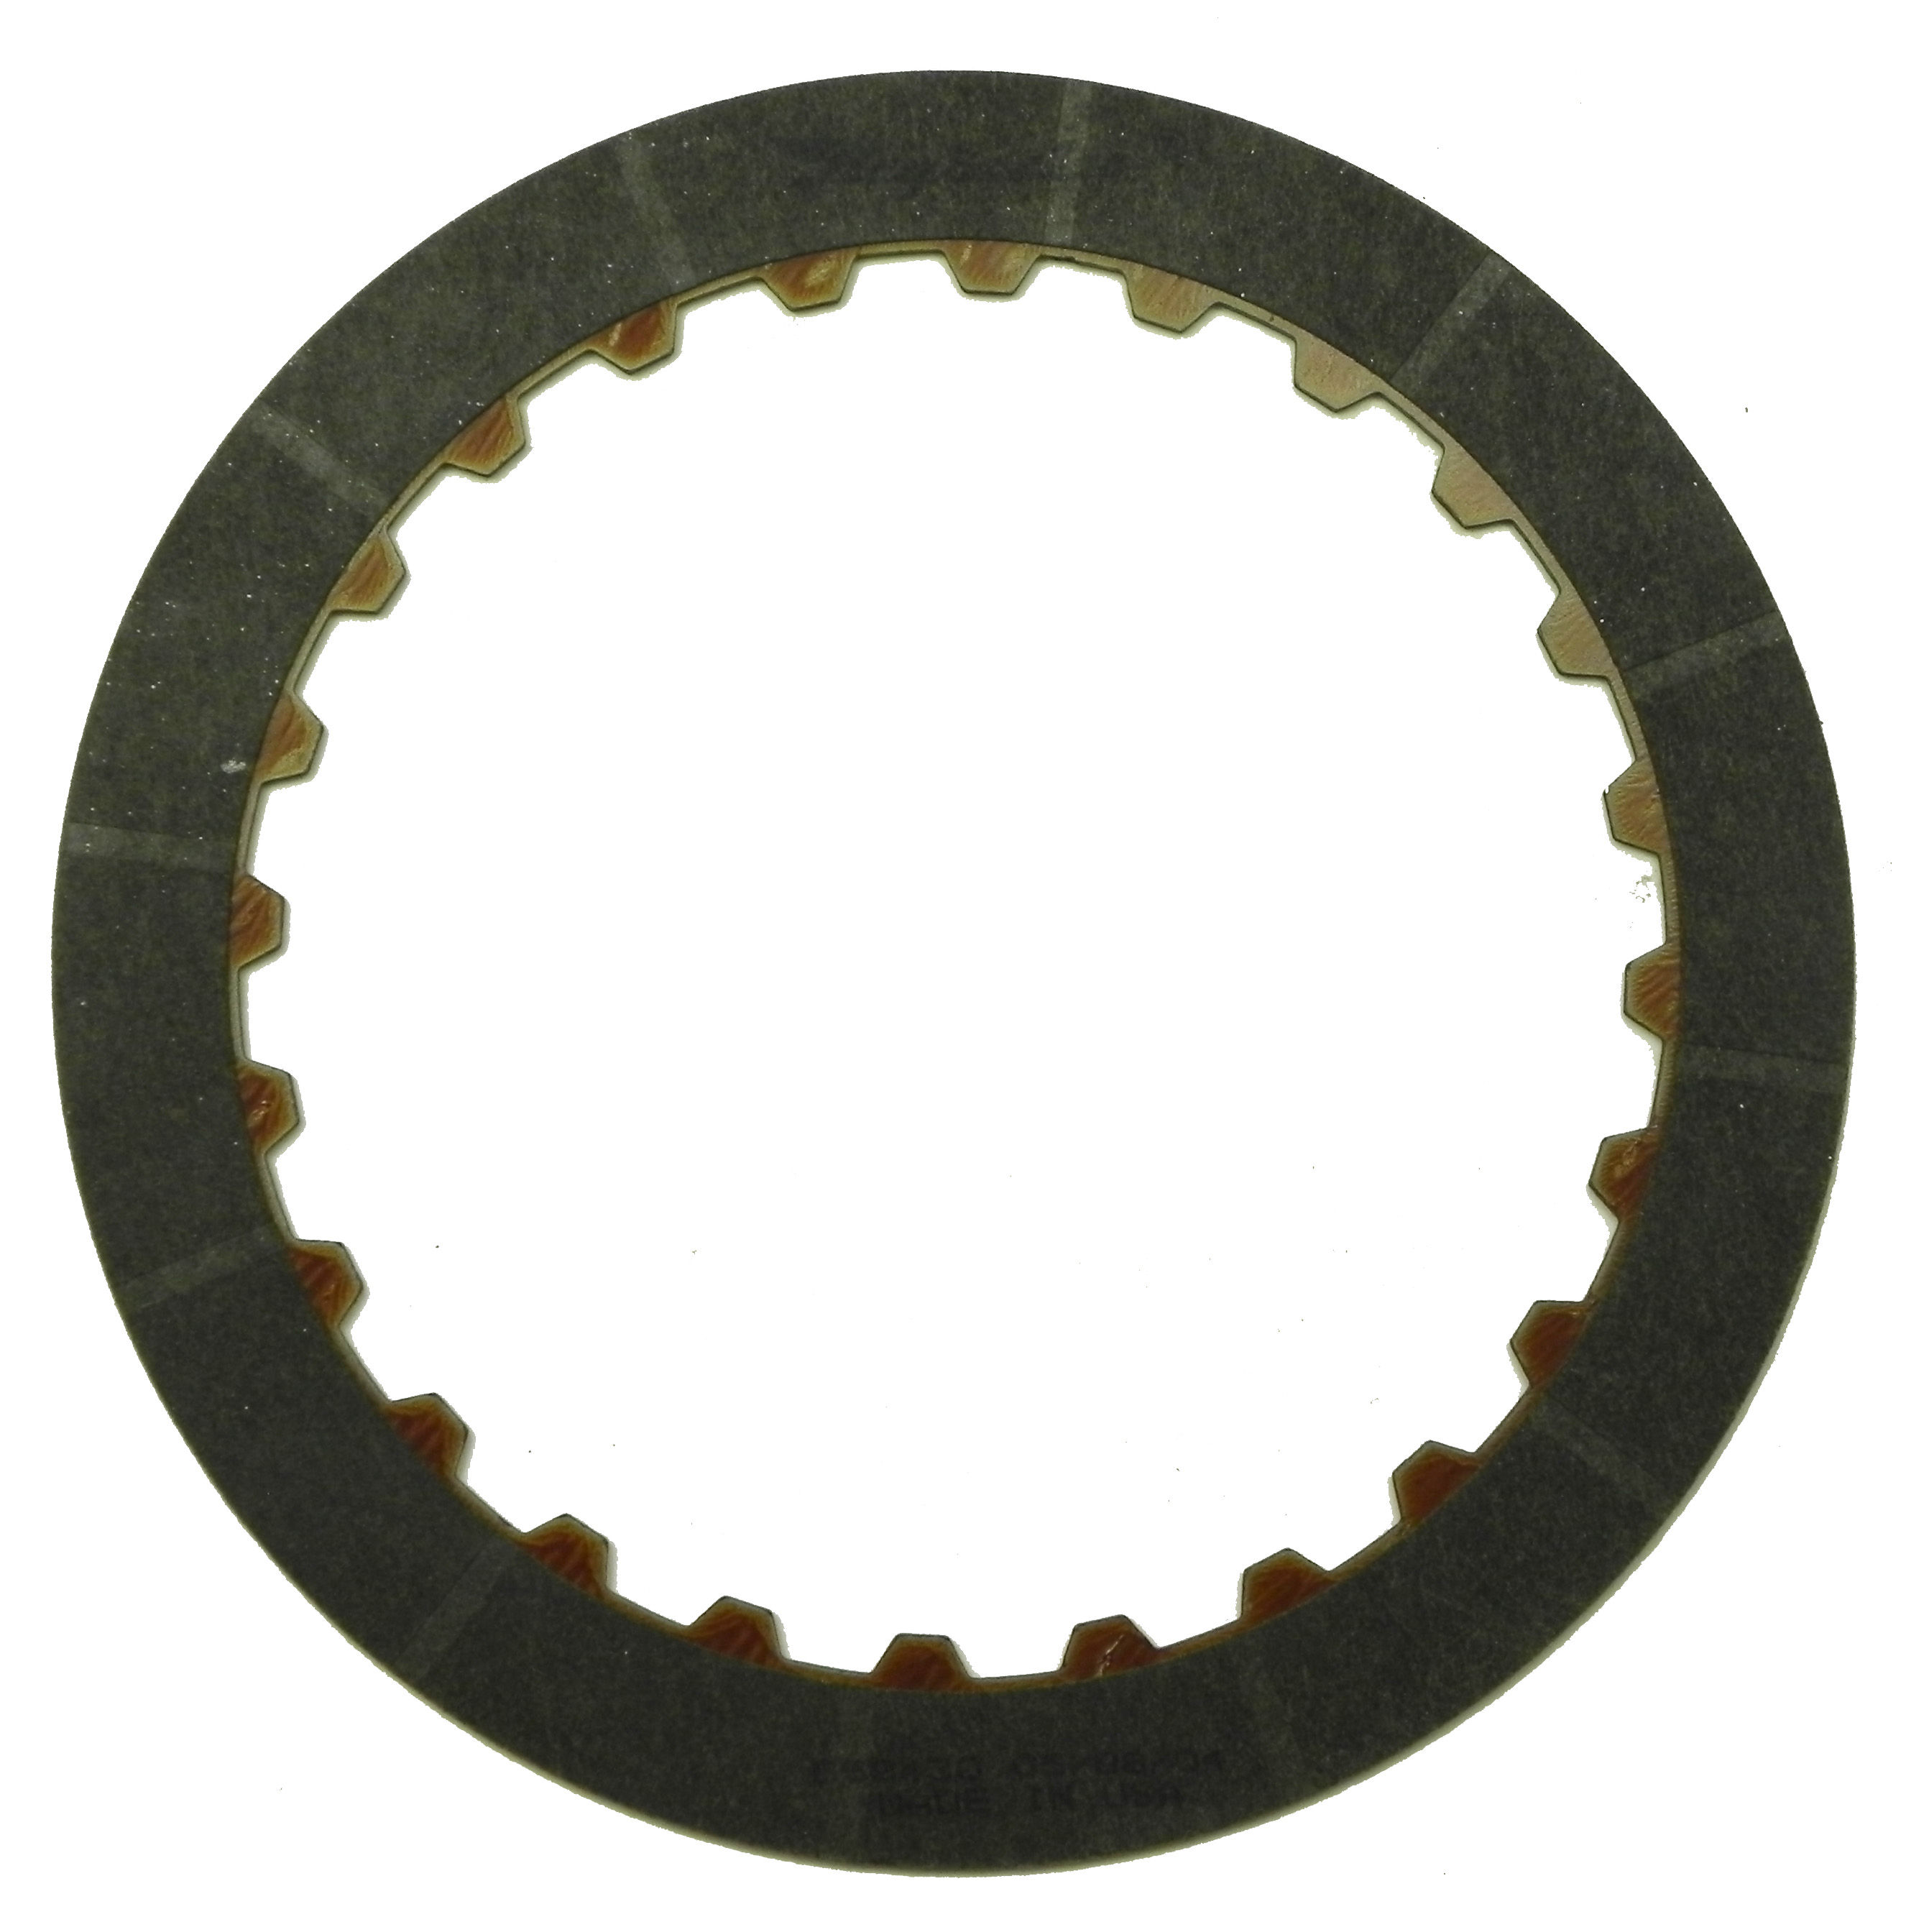 R558430 | 1999-ON Friction Clutch Plate High Energy Forward, Single Sided, ID Spline High Energy